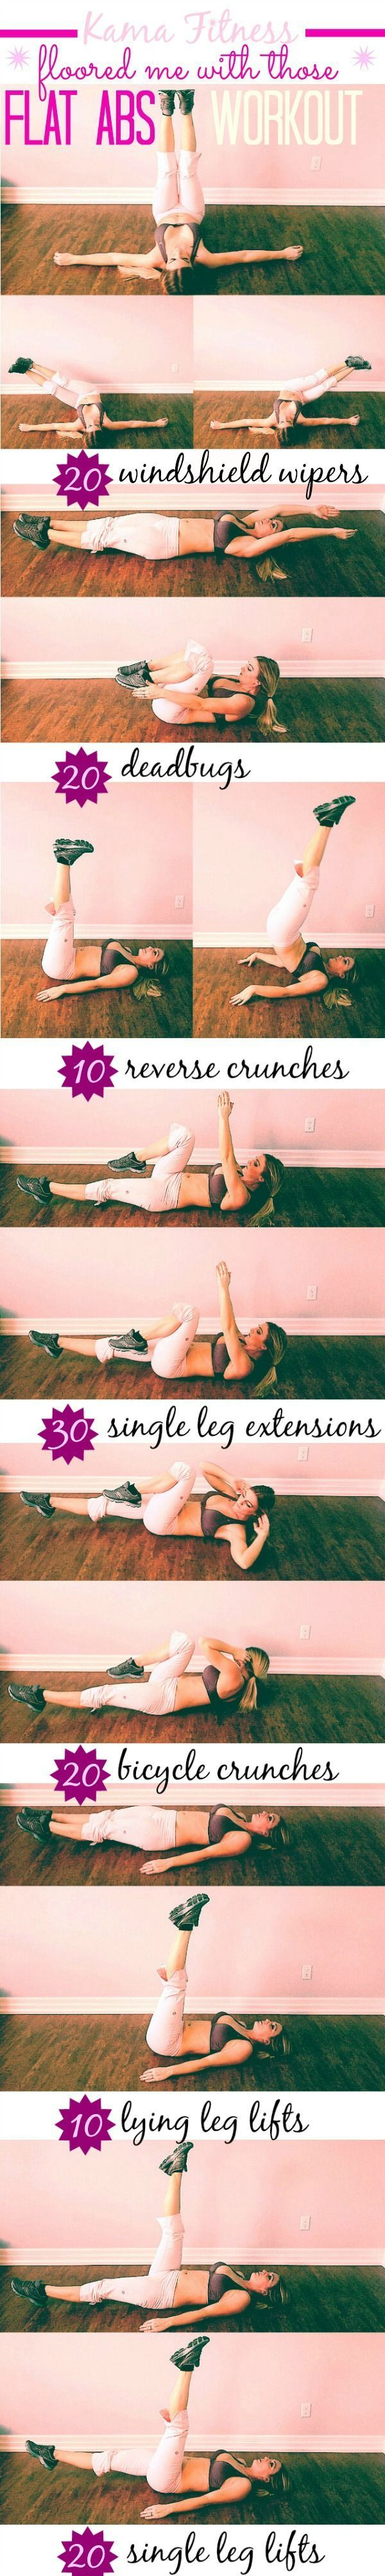 Ab workout! #abs #workout Get Sexy Abs with our simple Workout on our website #fitness #running #weightloss #exercise